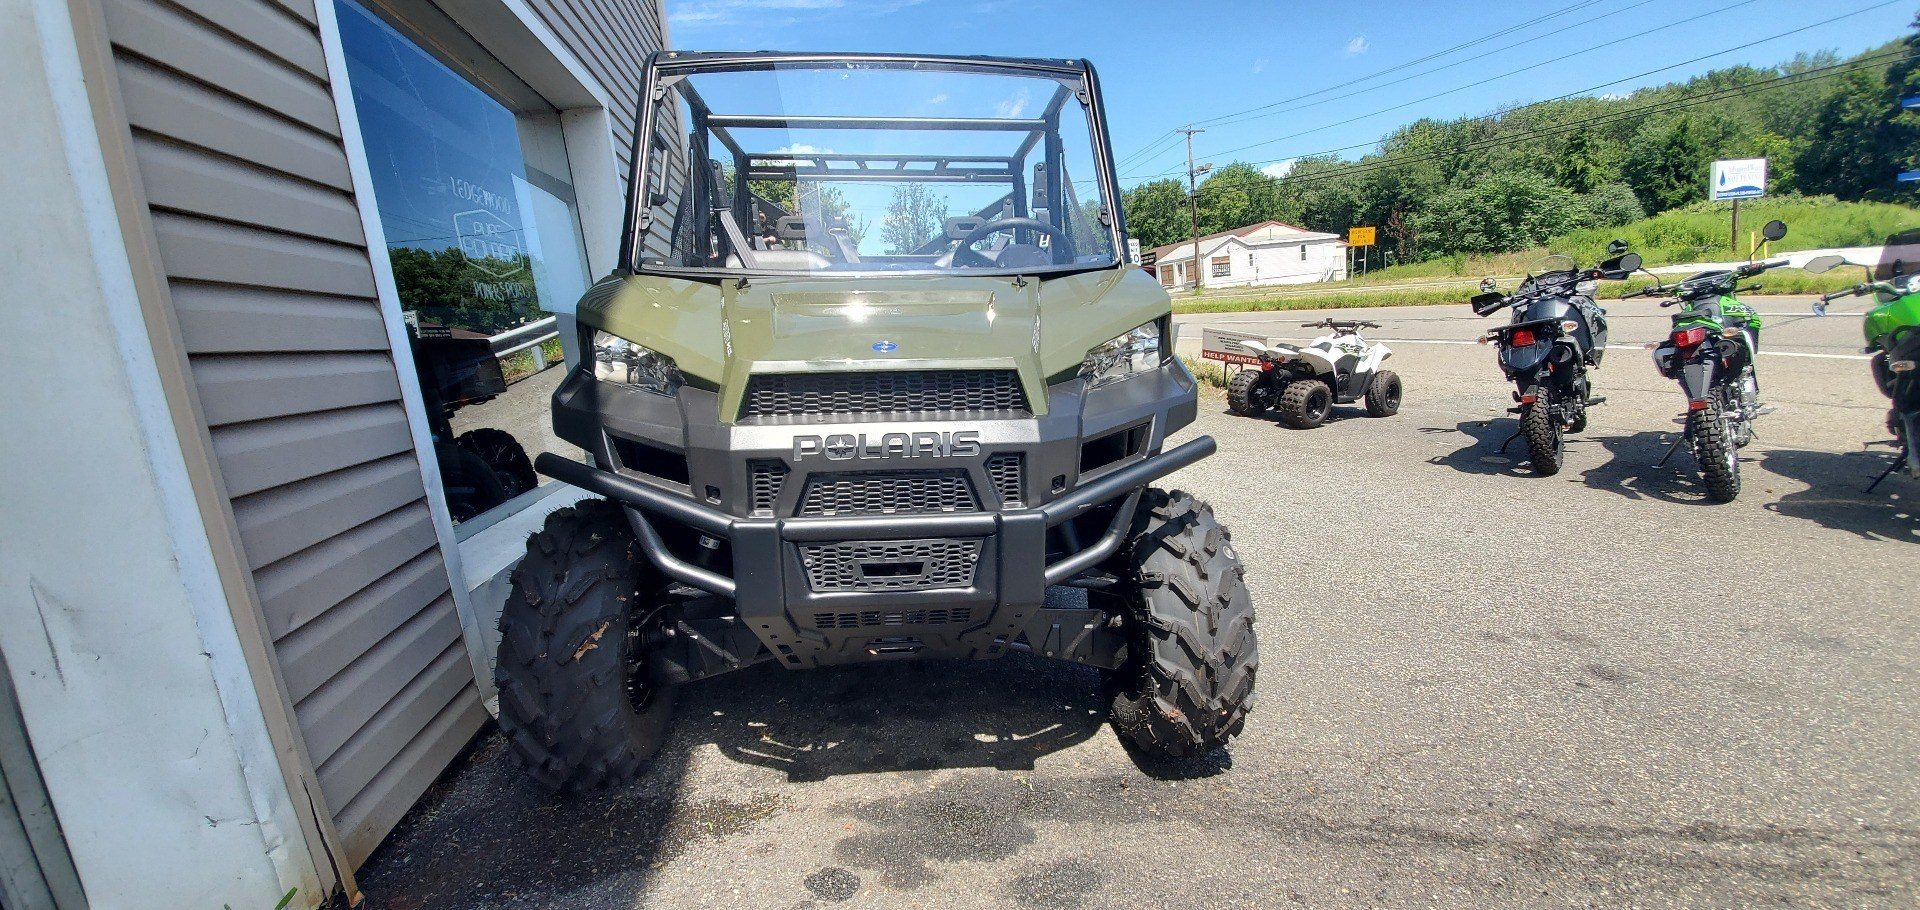 2019 Polaris Ranger Crew XP 900 in Ledgewood, New Jersey - Photo 9